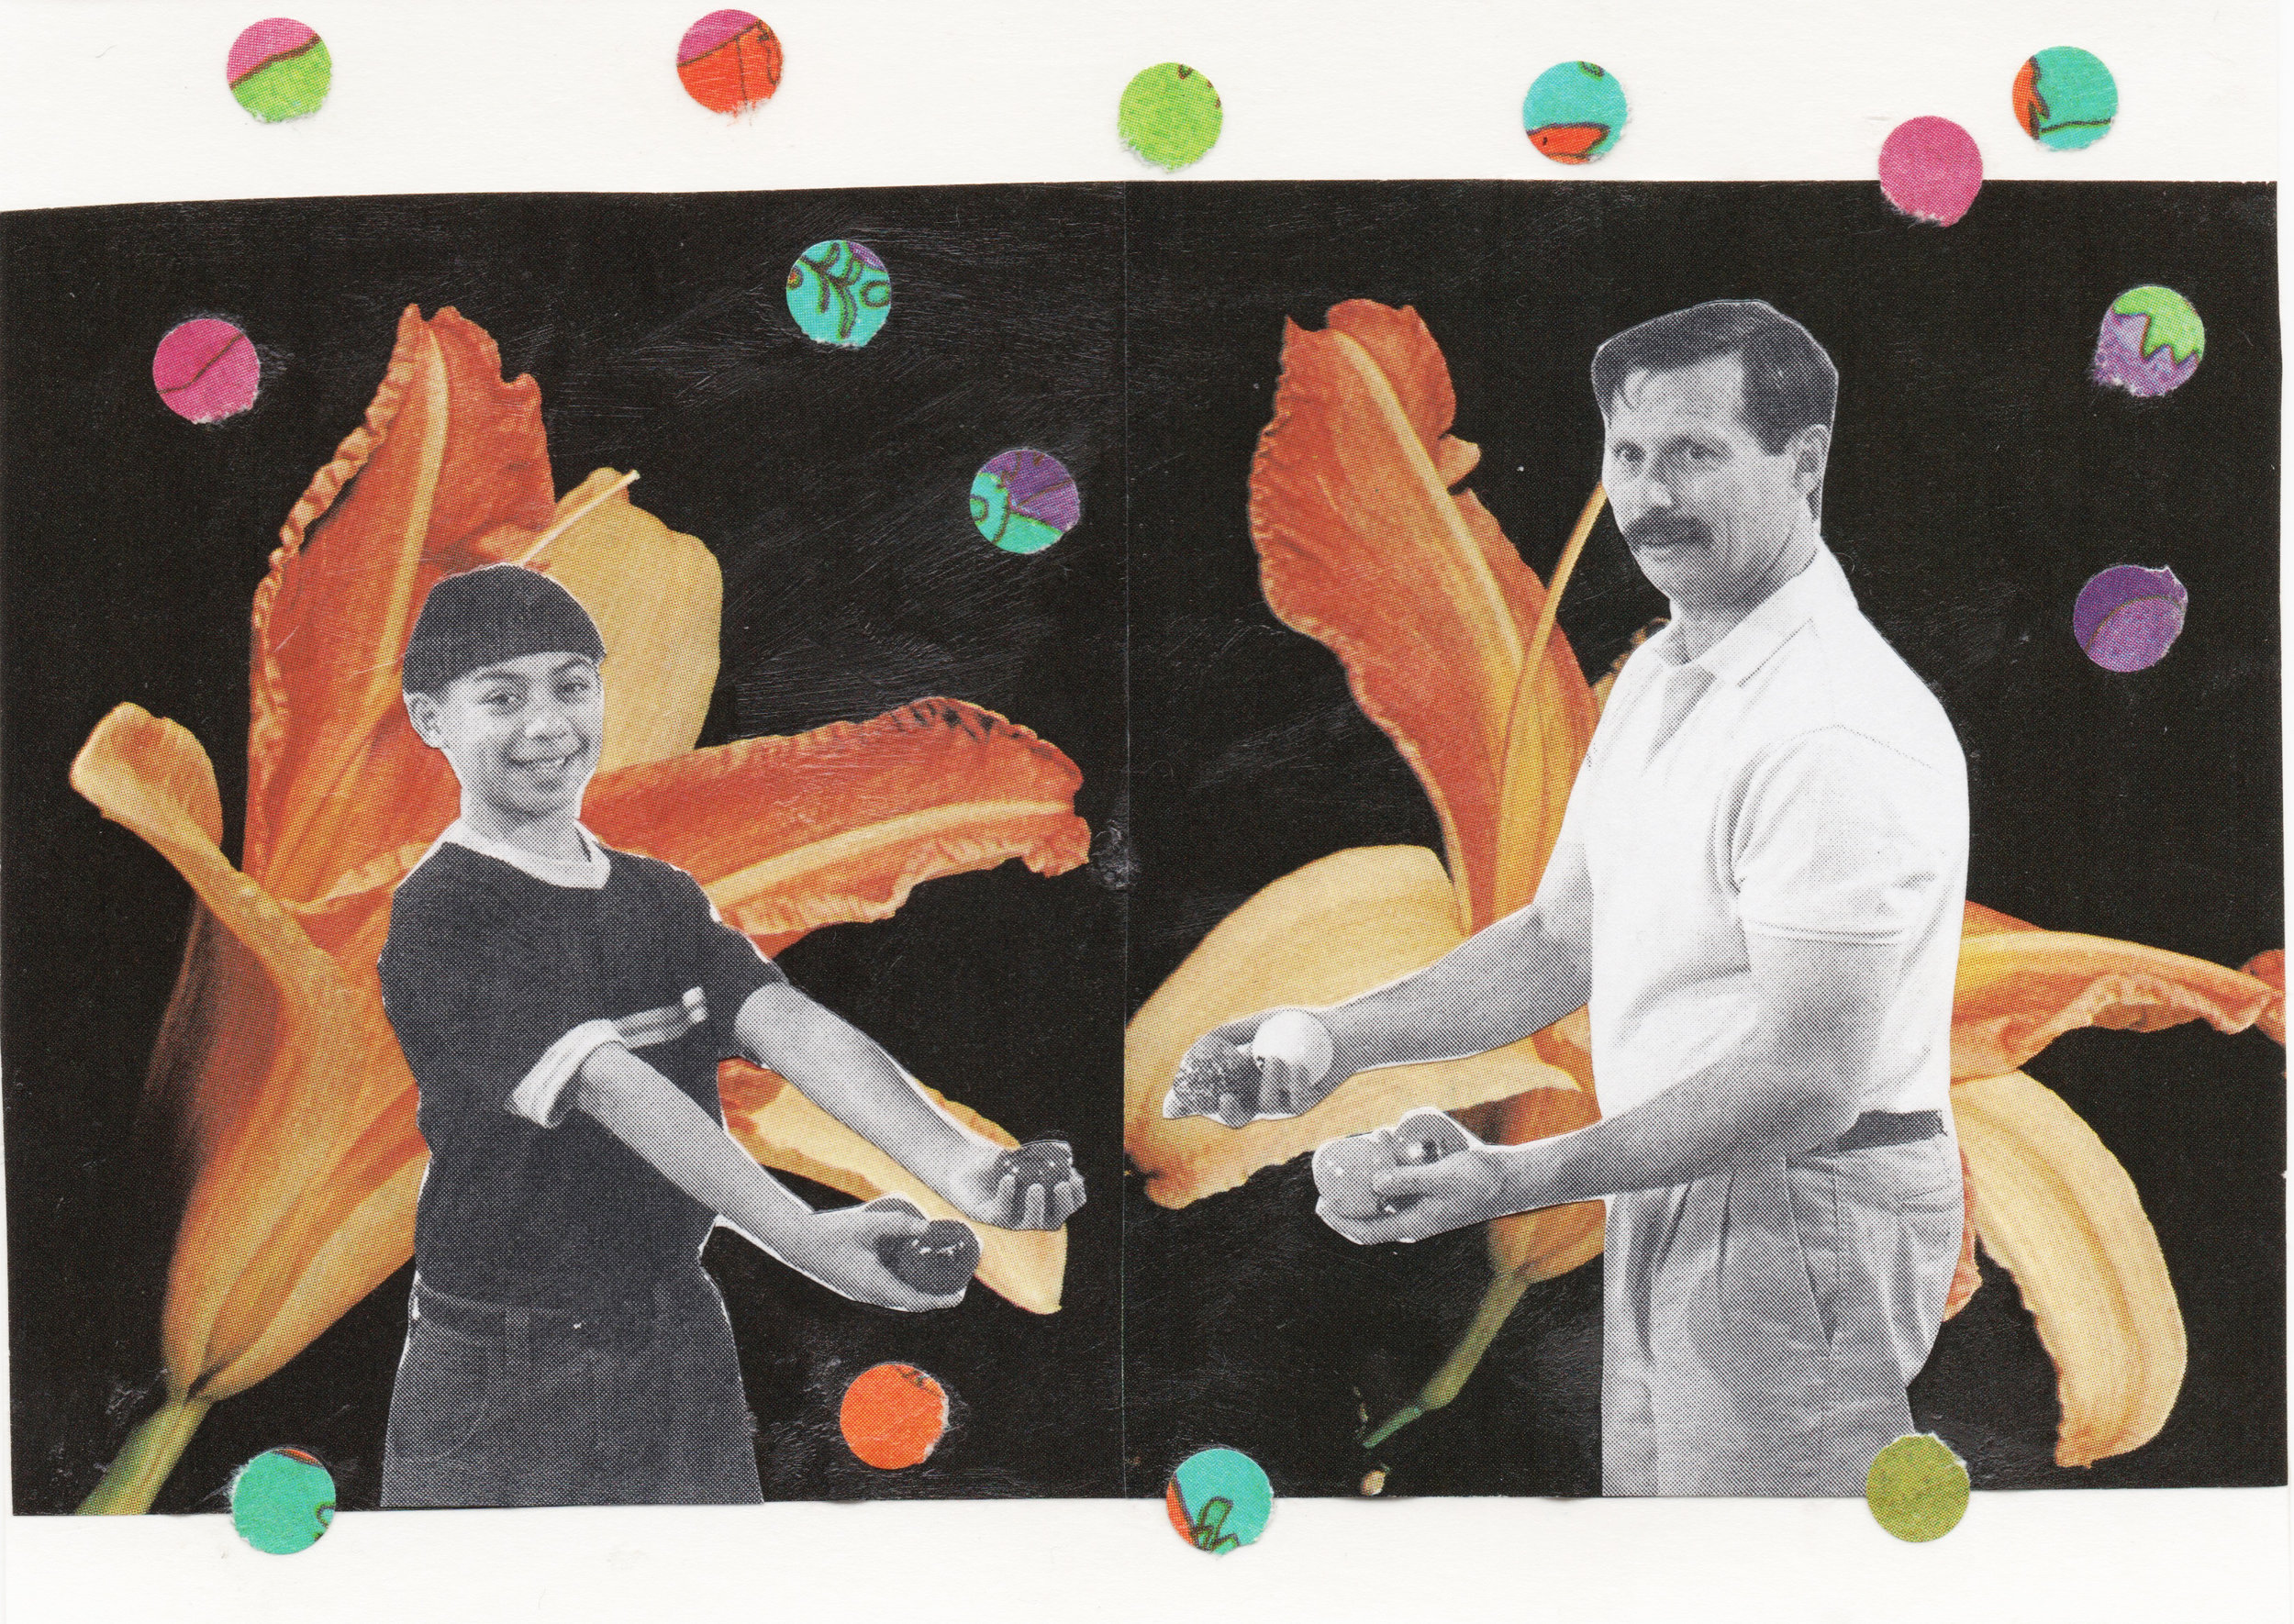 Jugglers   2017  Collage  4x6 inches